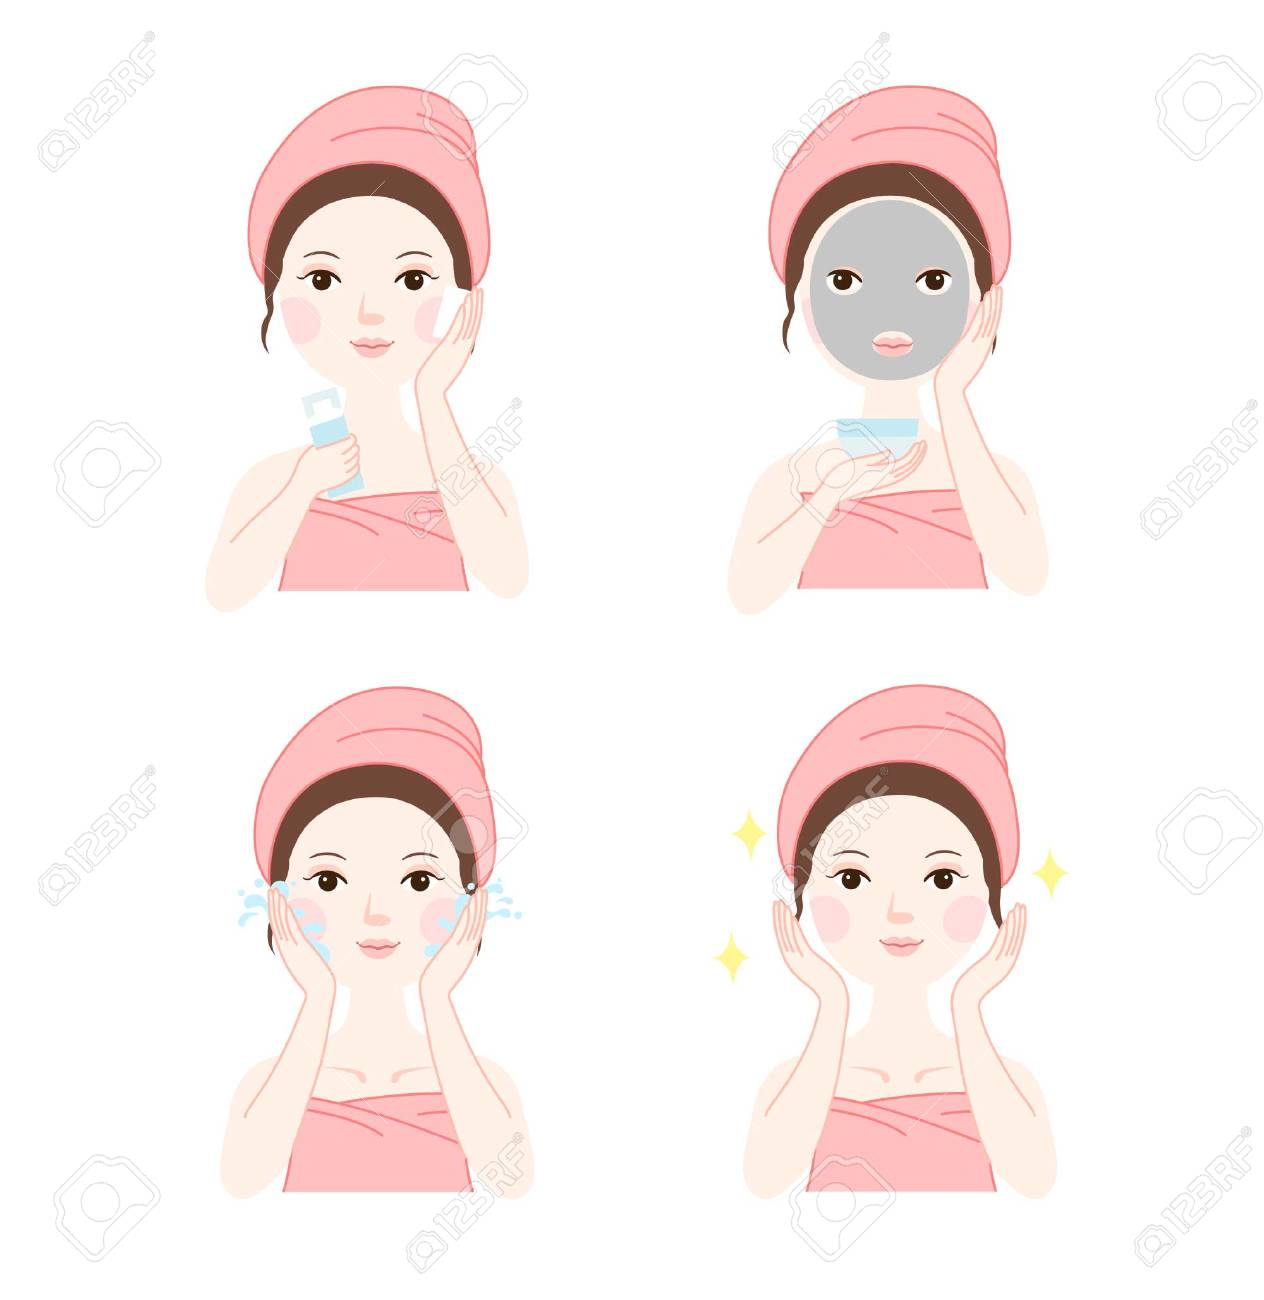 Step diagram of mud mask royalty free cliparts vectors and stock step diagram of mud mask stock vector 86226117 ccuart Gallery